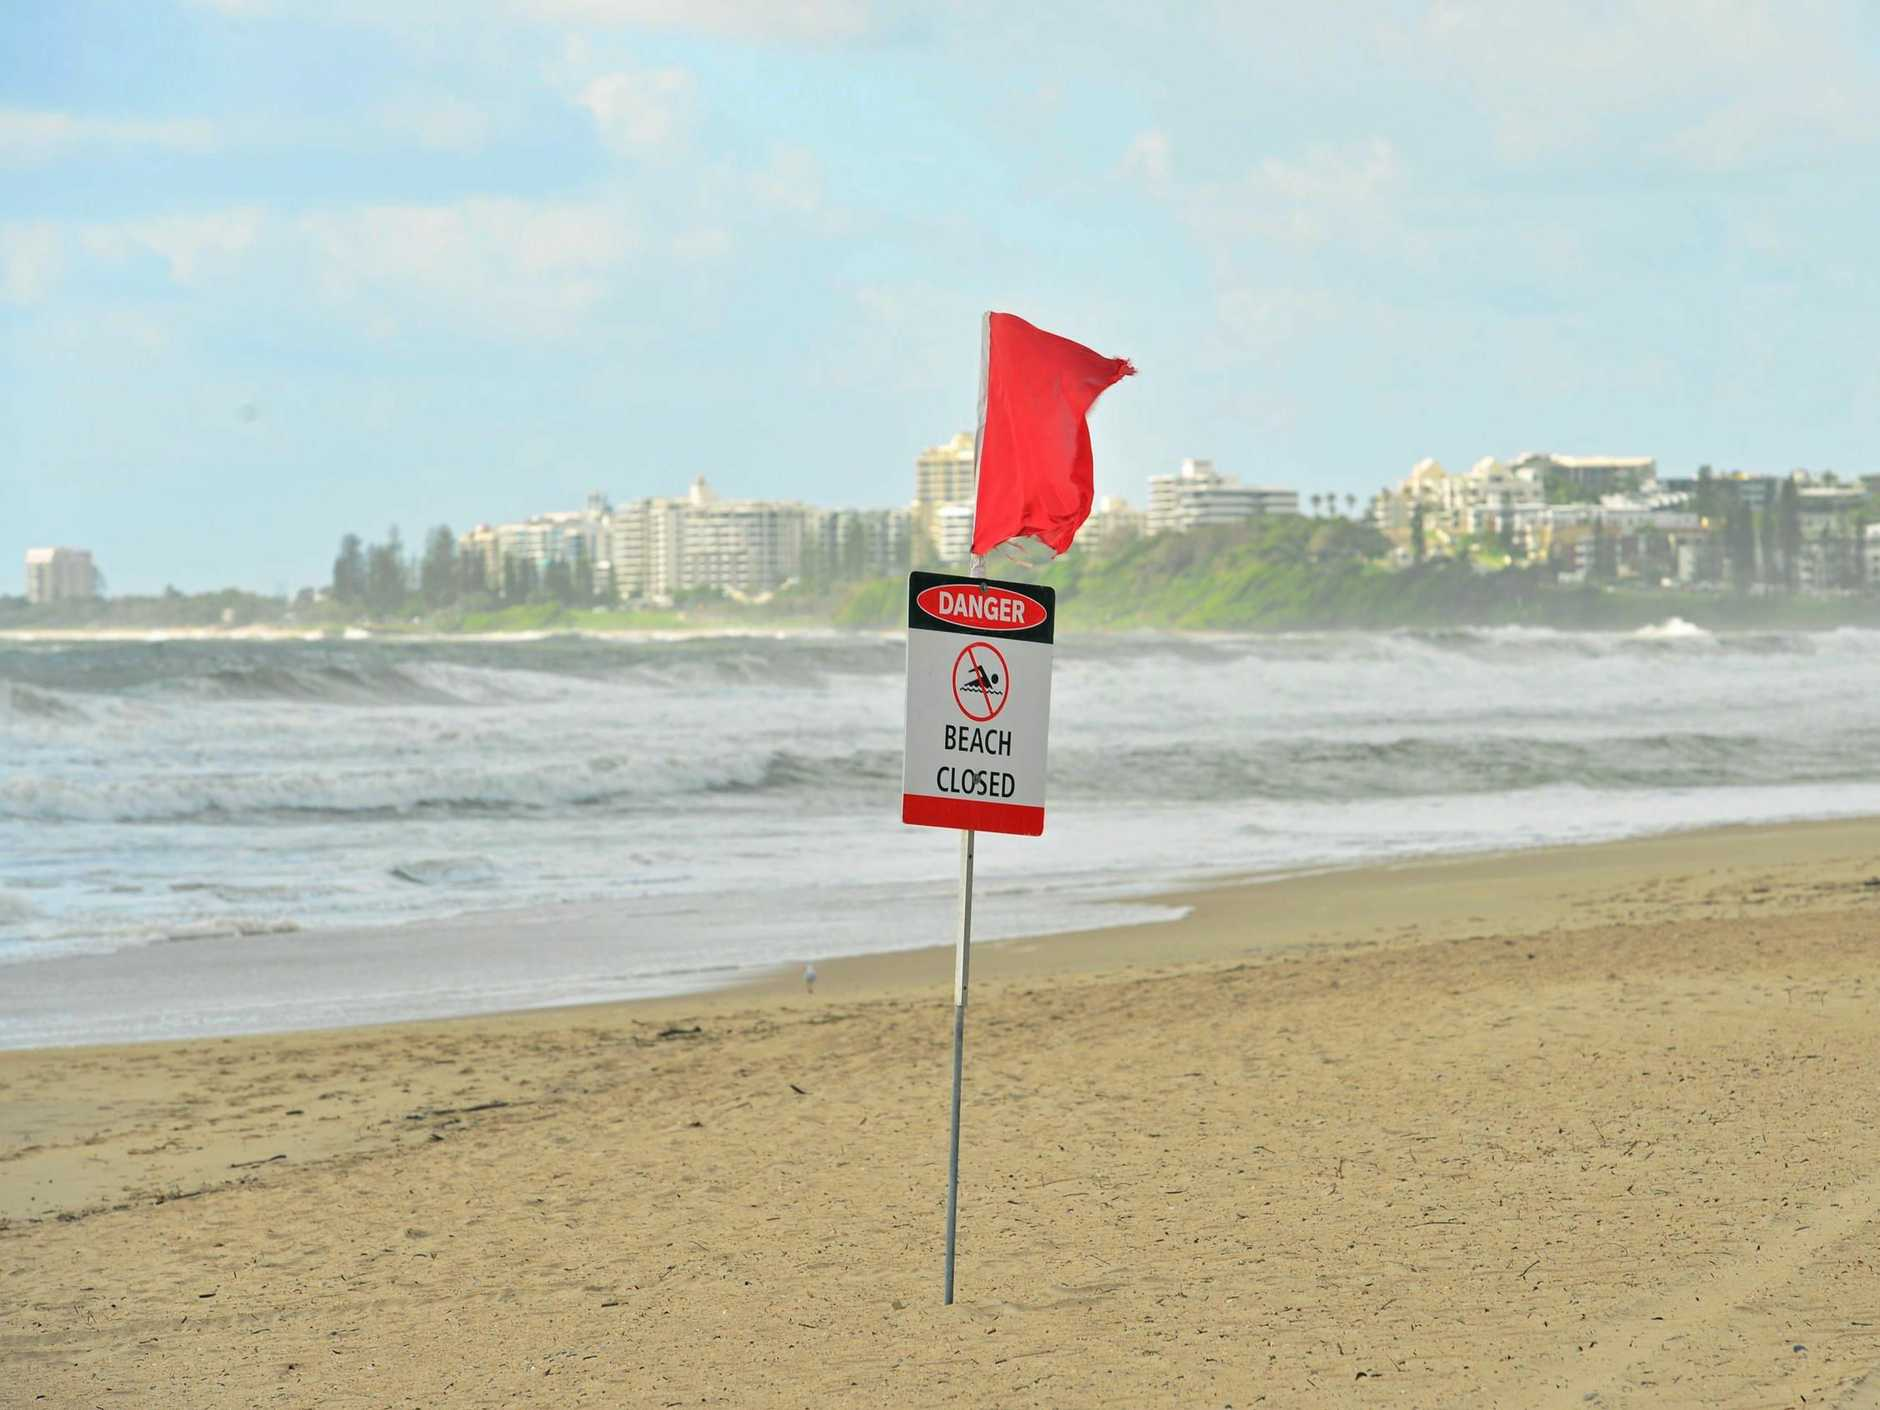 Maroochydore beach was closed as ex-Tropical Cyclone Linda sent strong winds and swell straight onto the exposed beach.